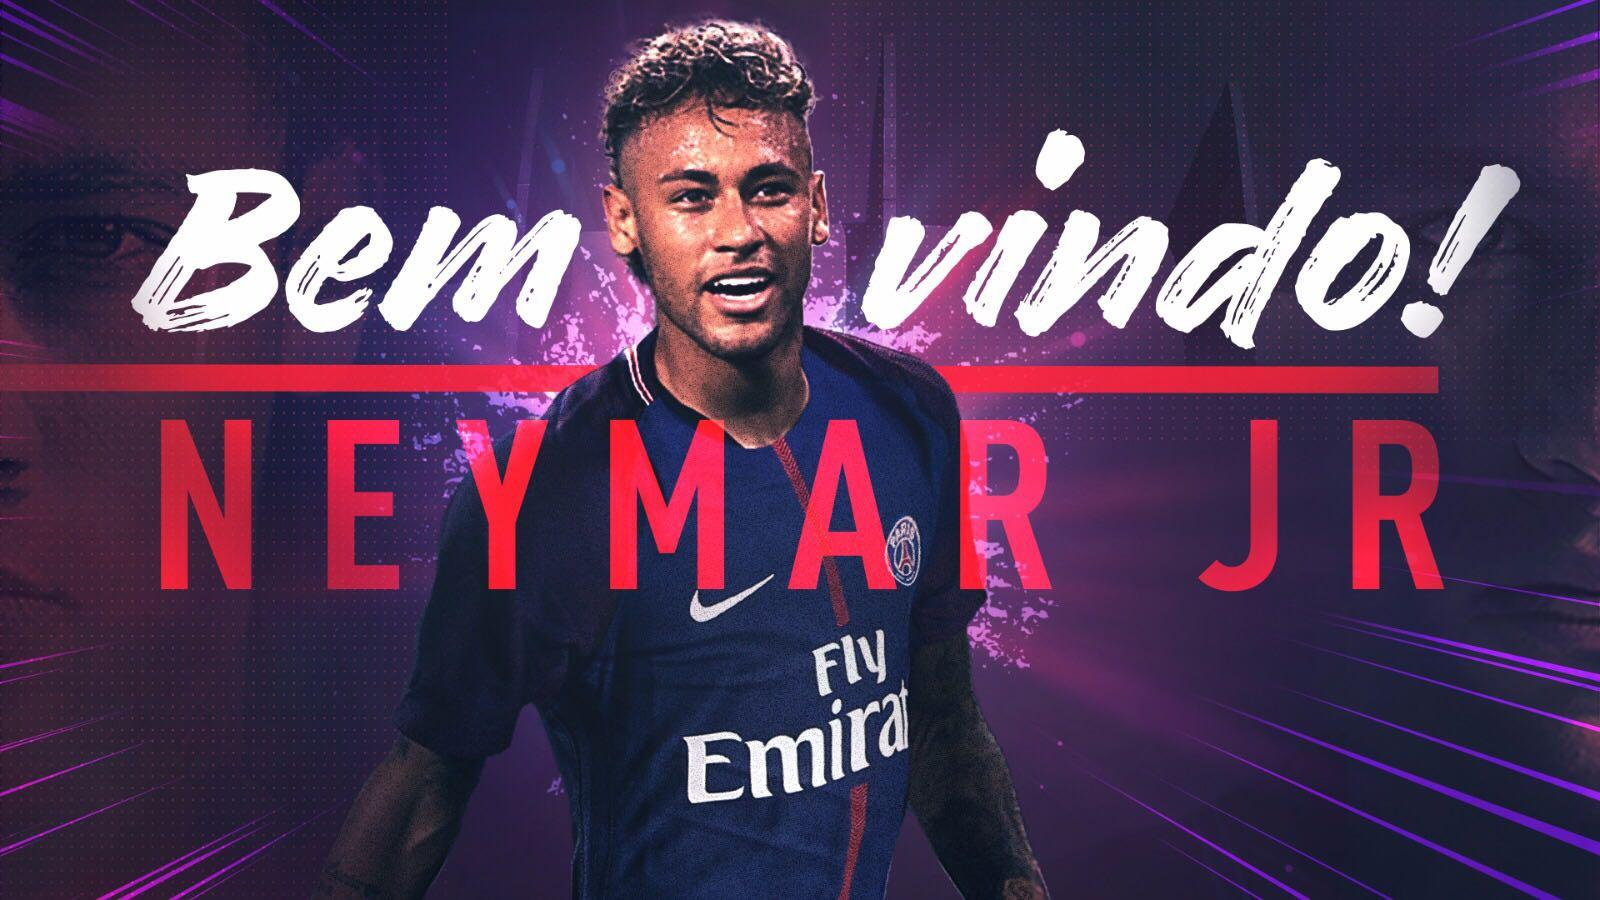 Neymar Completes World-Record Move To PSG - Premium Times Nigeria